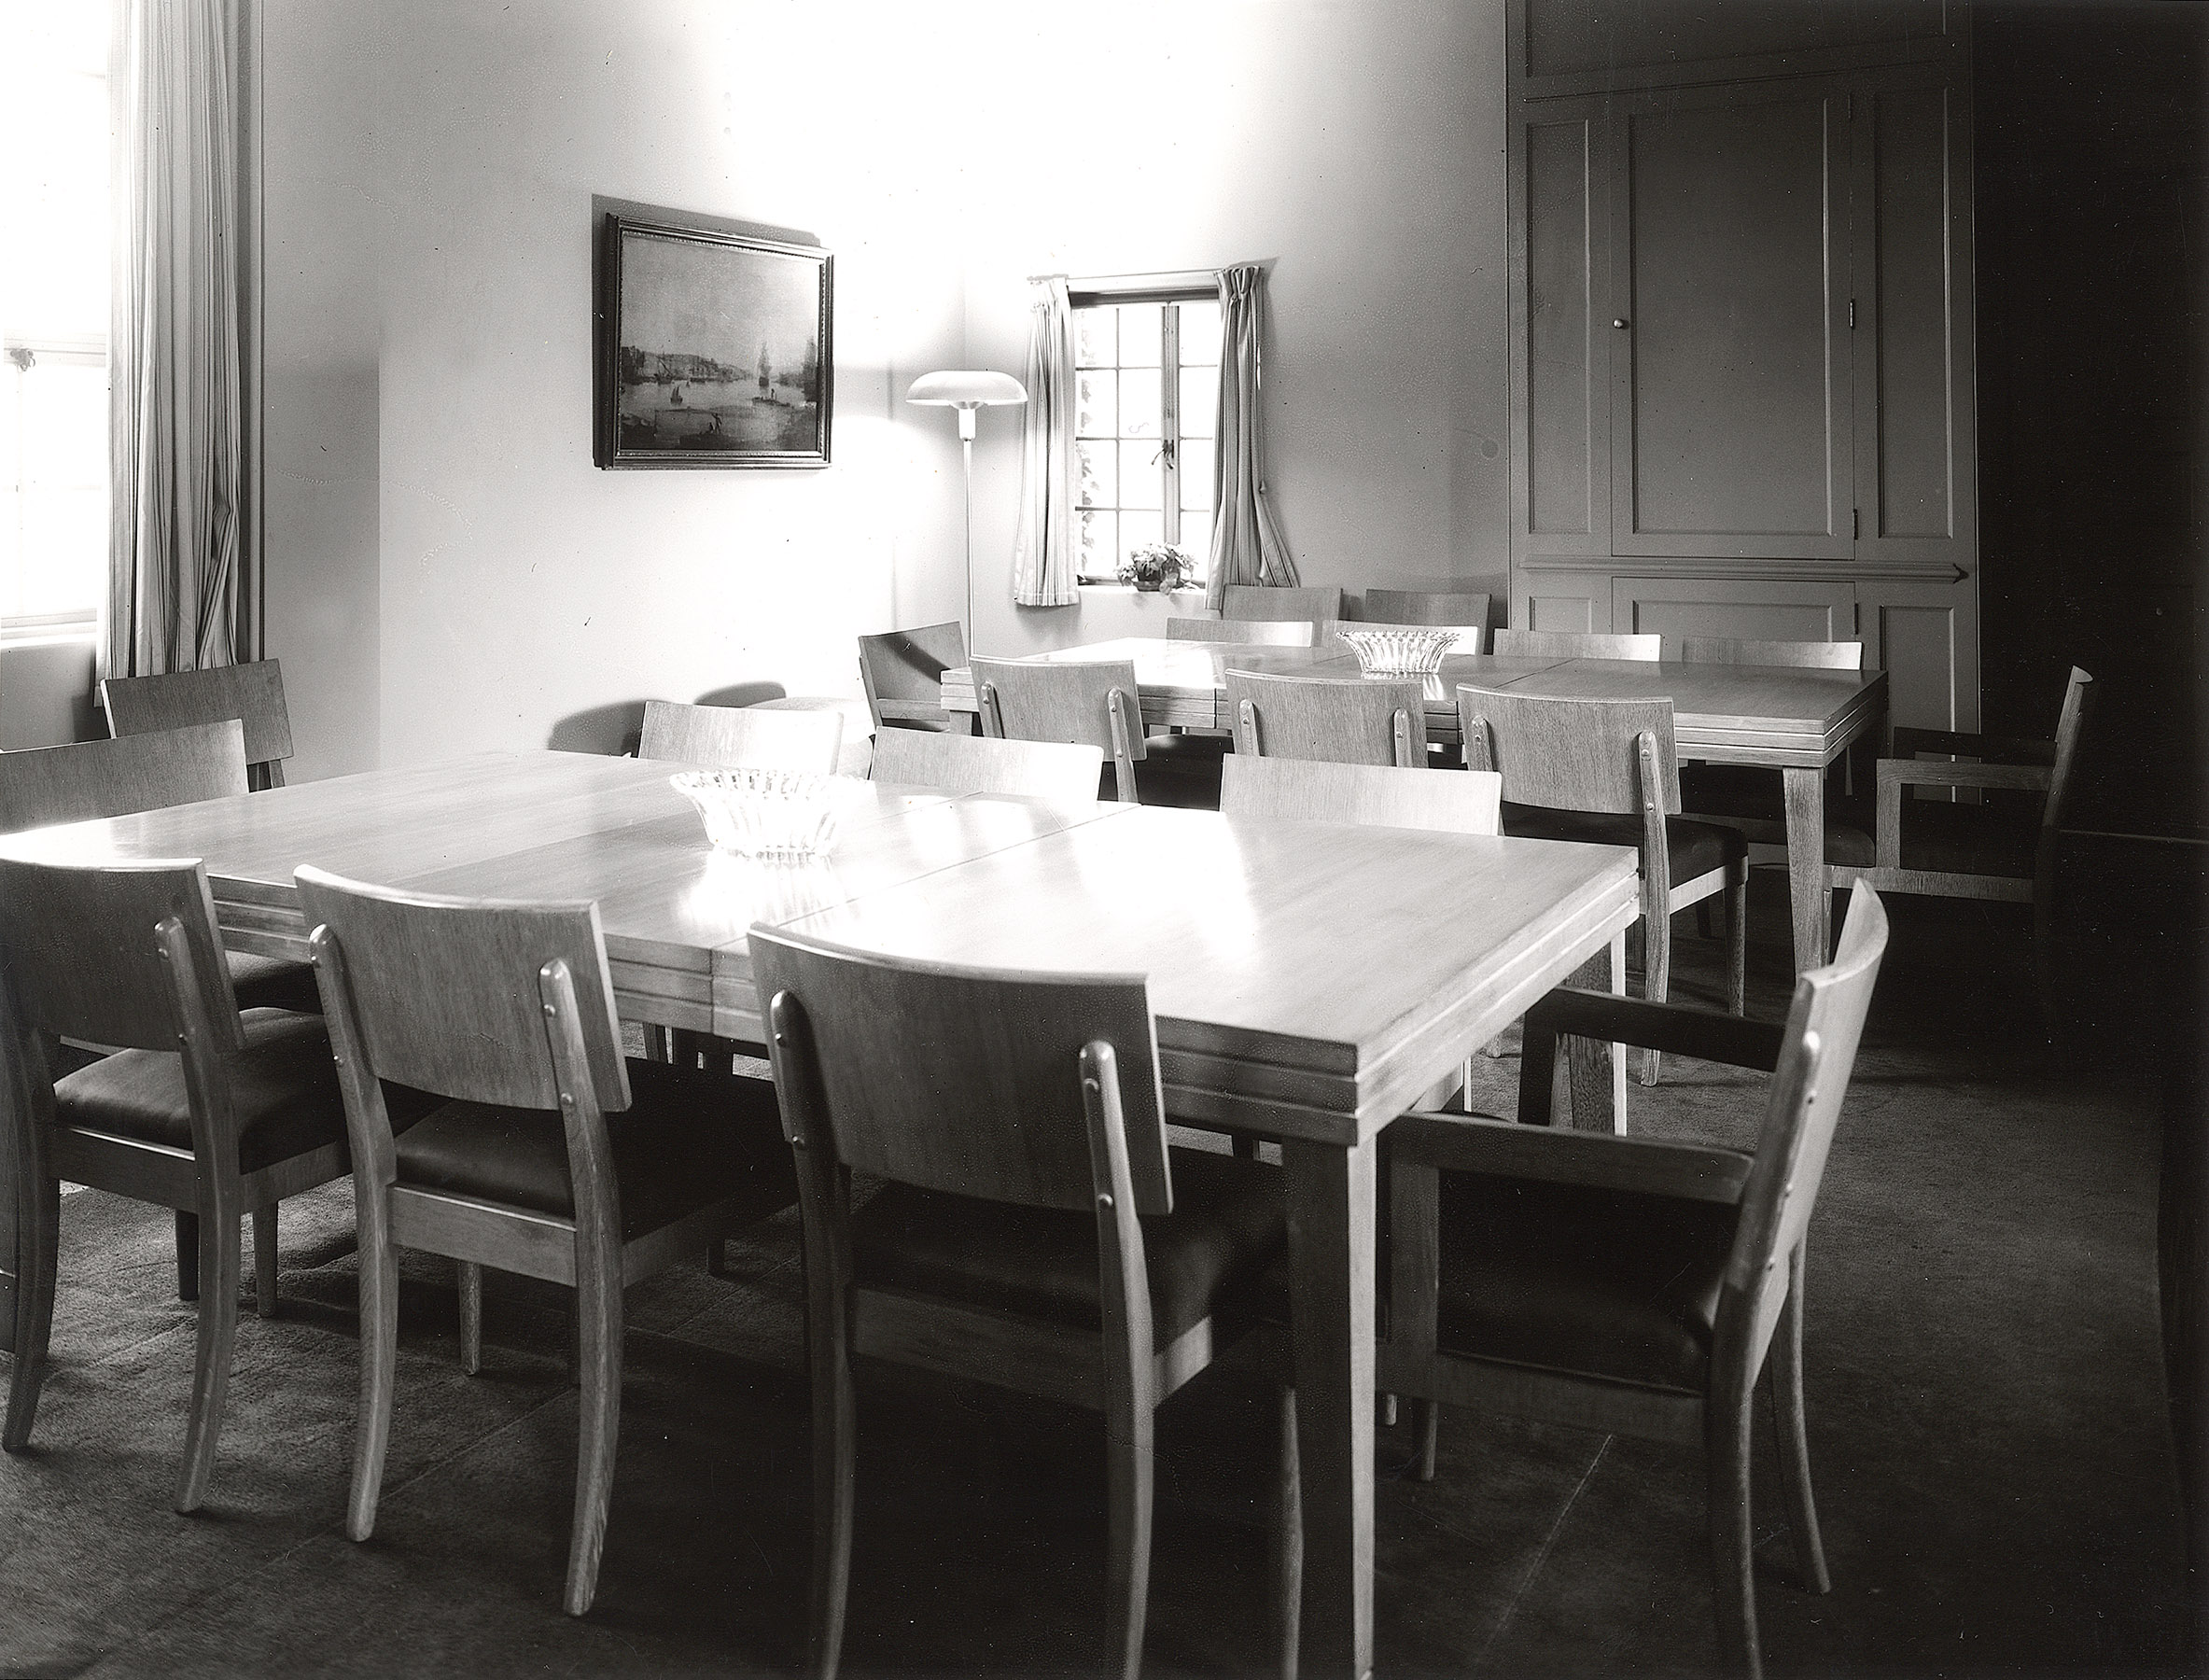 Fellows Building Dining Room, 1962